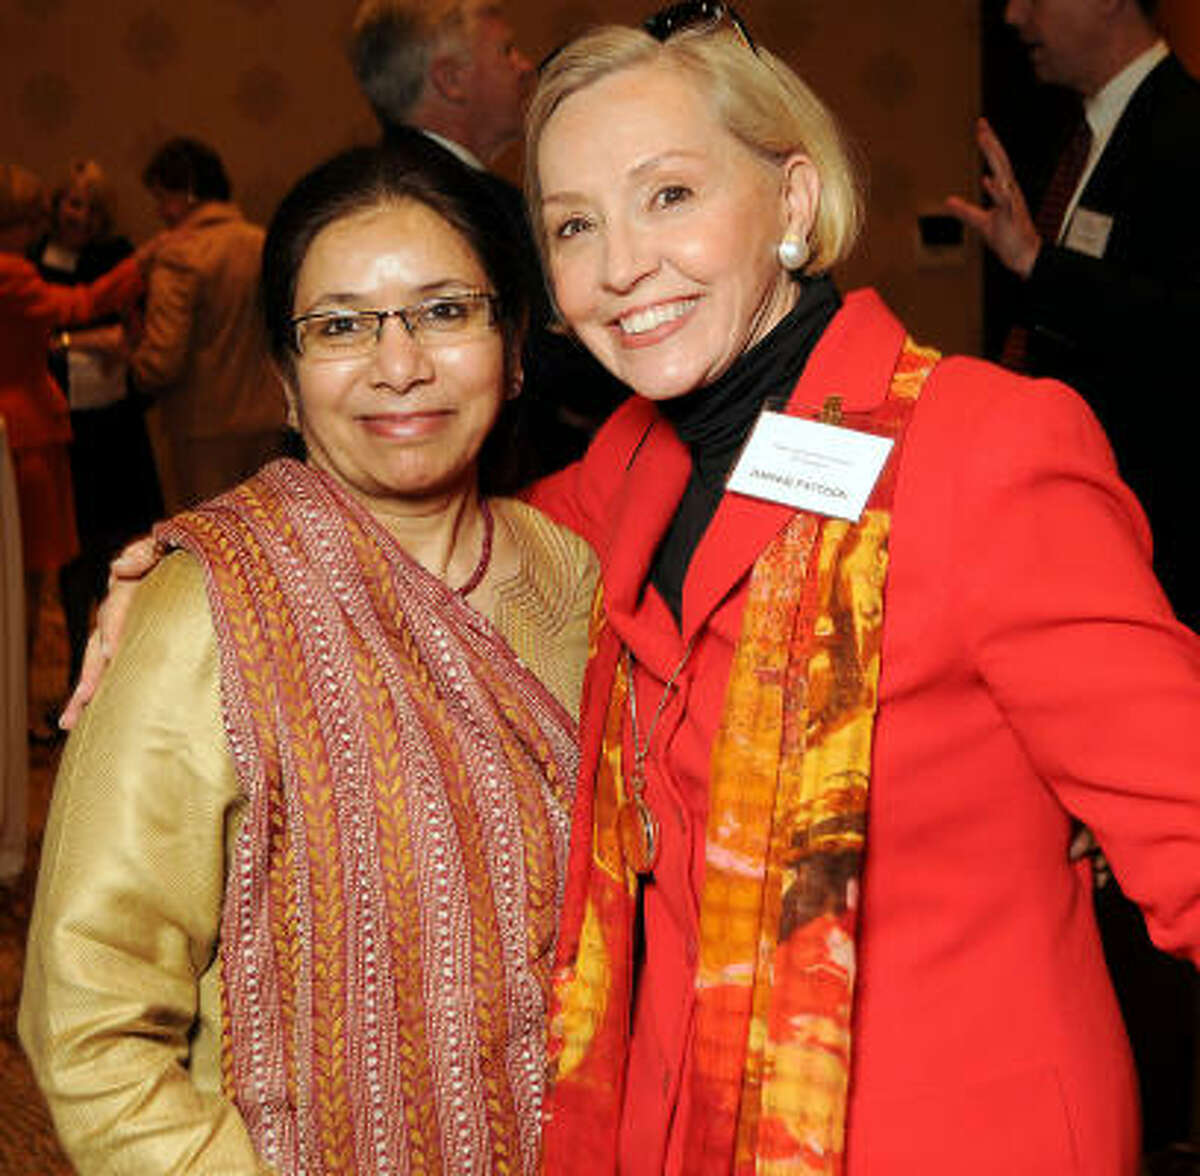 Saleha Khumawala and Kaye Patterson at the Three Cups of Tea with Greg Mortenson luncheon to raise funds and awareness for the Central Asia Institute at the Hotel InterContinental.